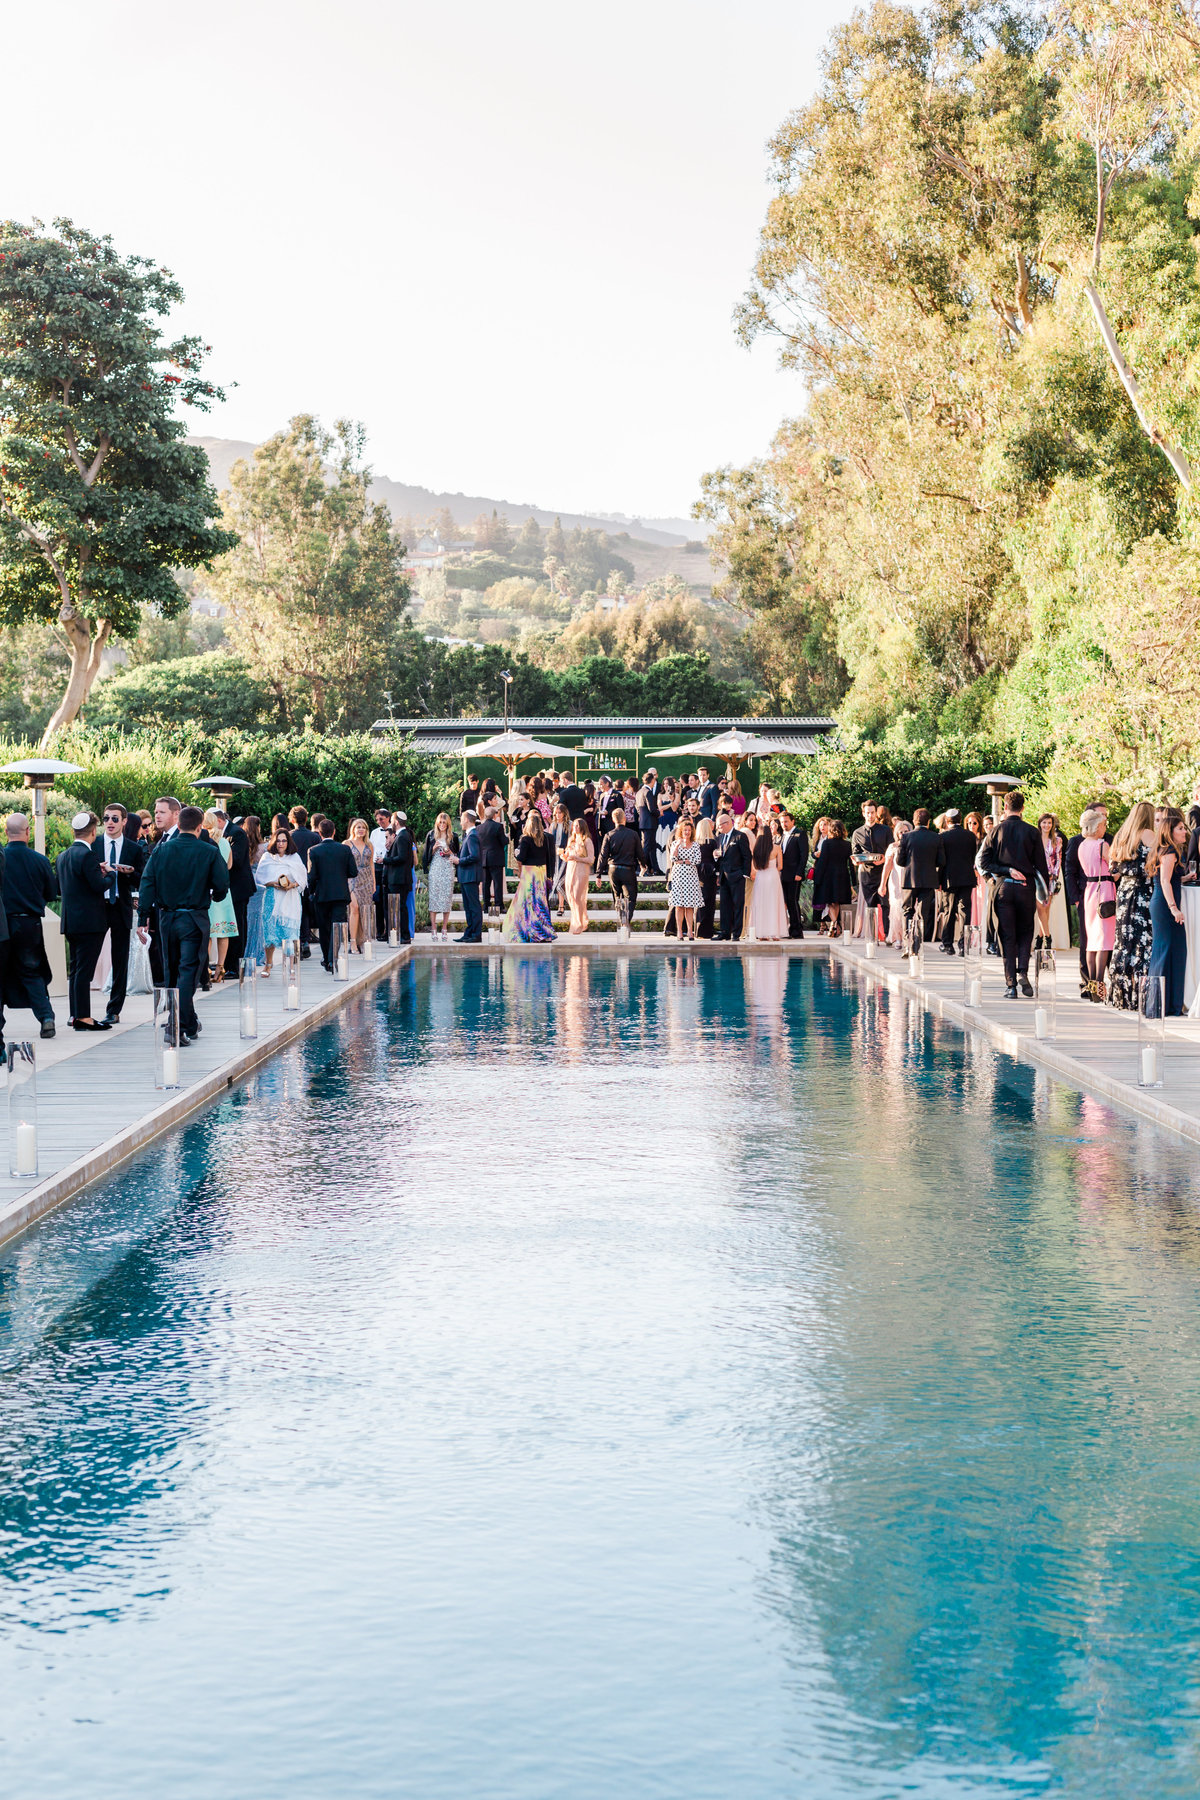 Malibu Private Estate Wedding_Valorie Darling Photography_020B4303-2